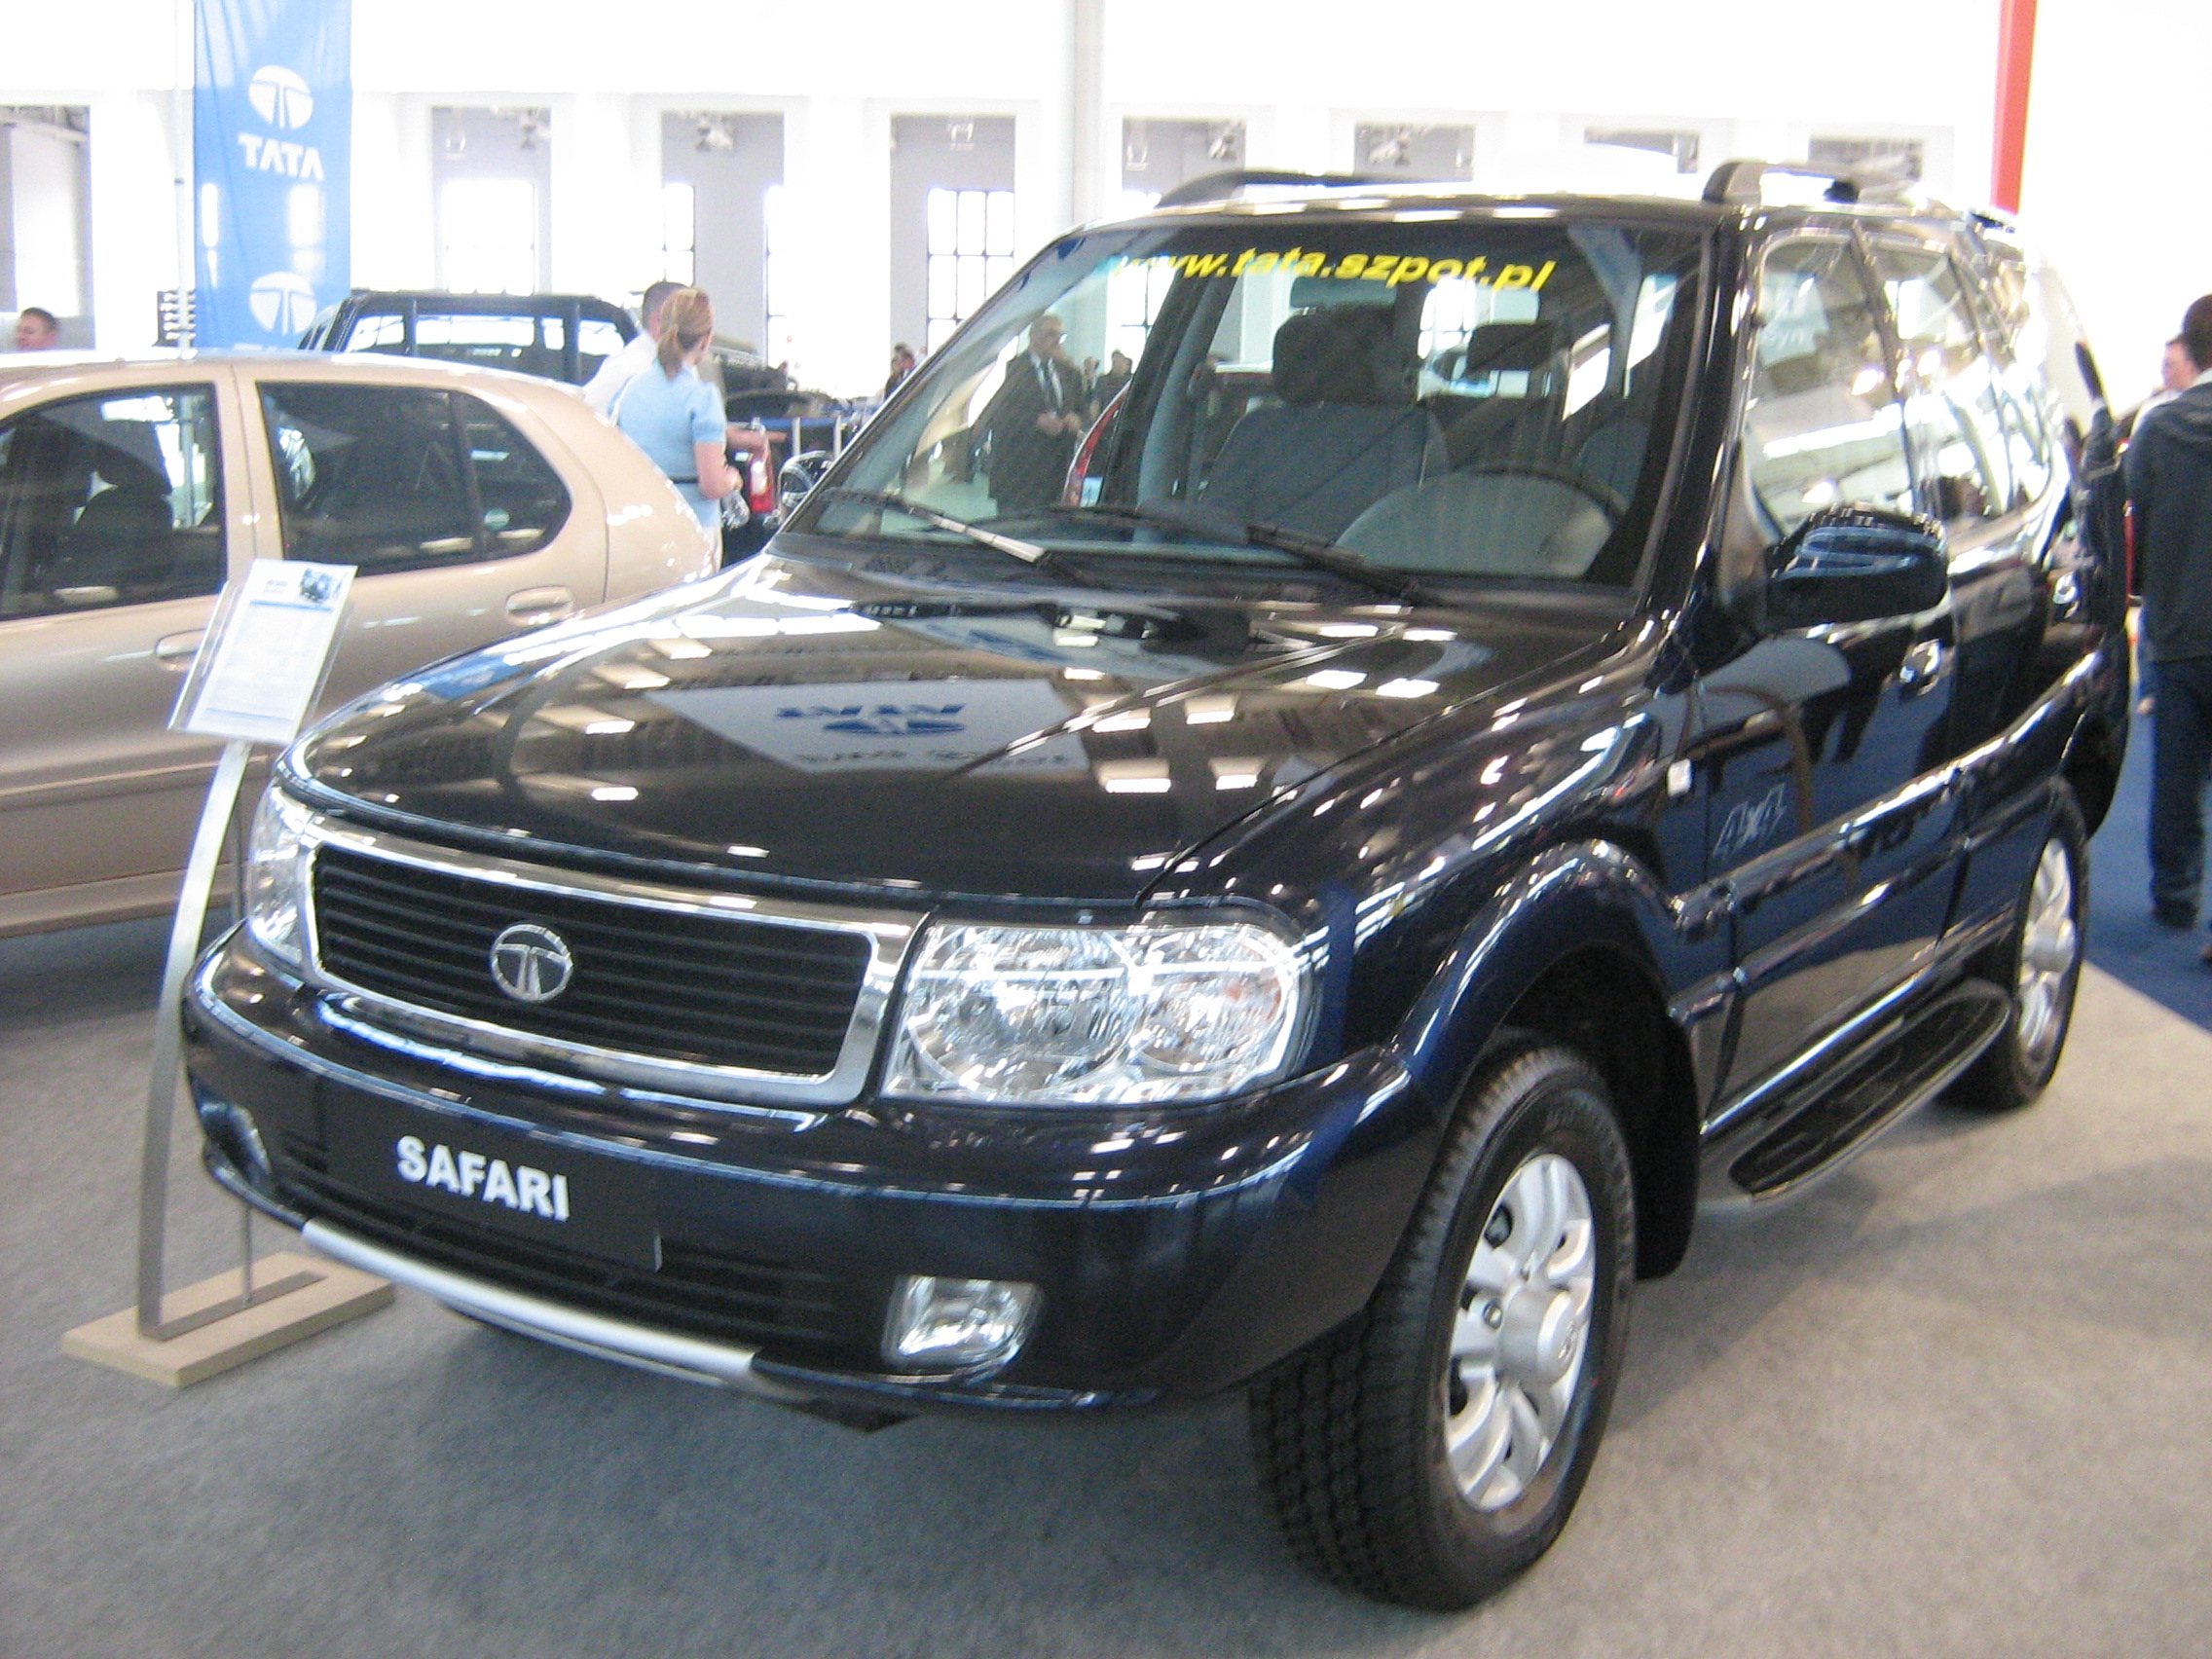 TATA Safari: 10 фото